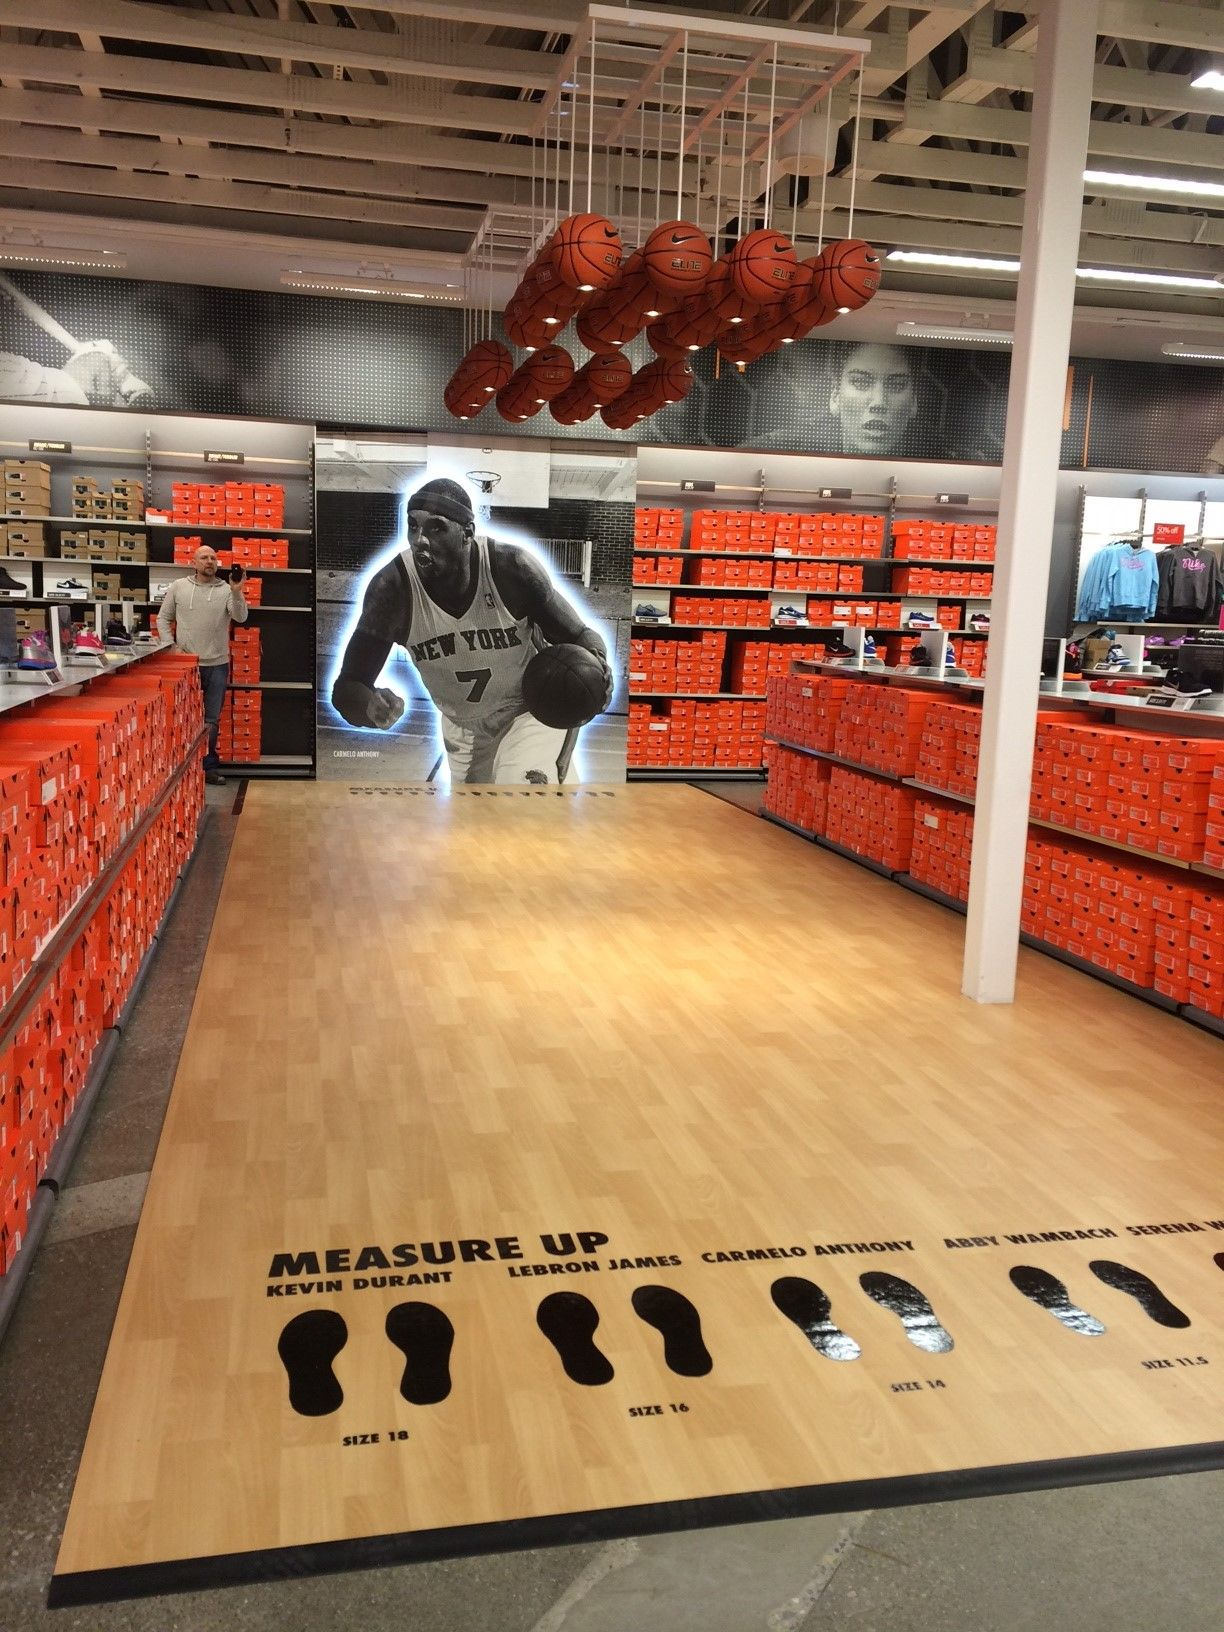 Badkamer Outlet Amersfoort Nike Outlet Store Woodbury Ny Polyflor Forestfx